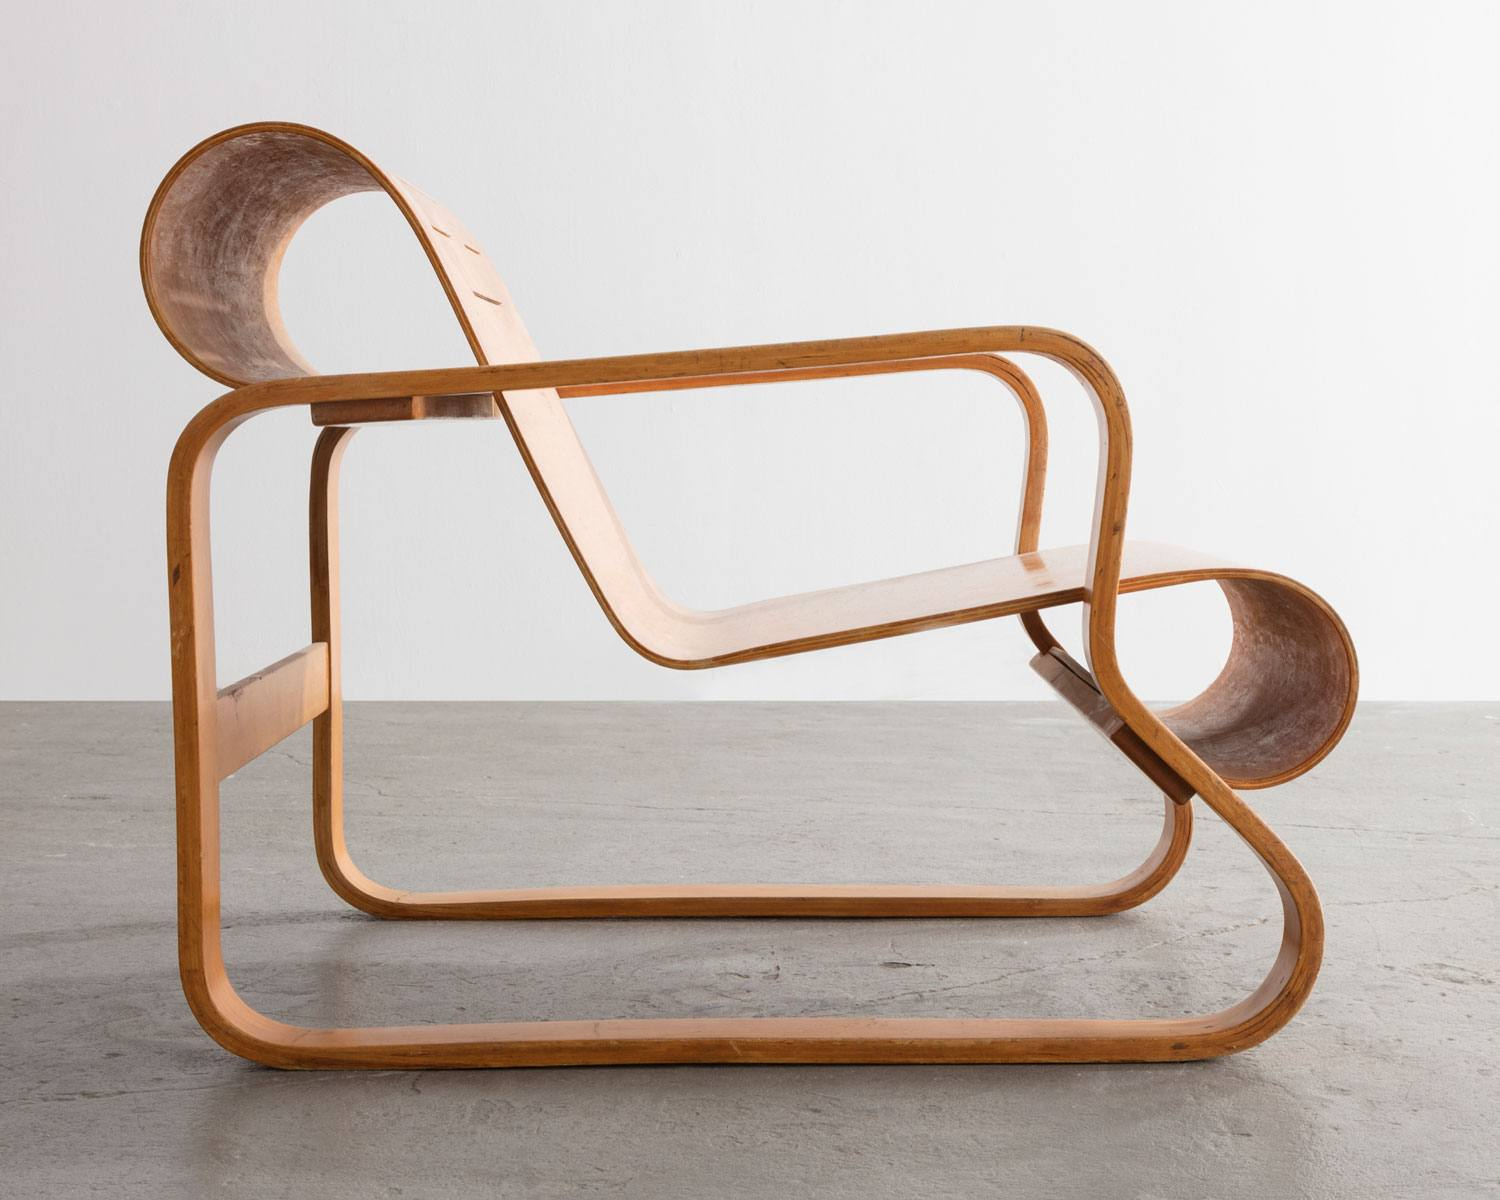 A chair designed by Alvar Aalto.